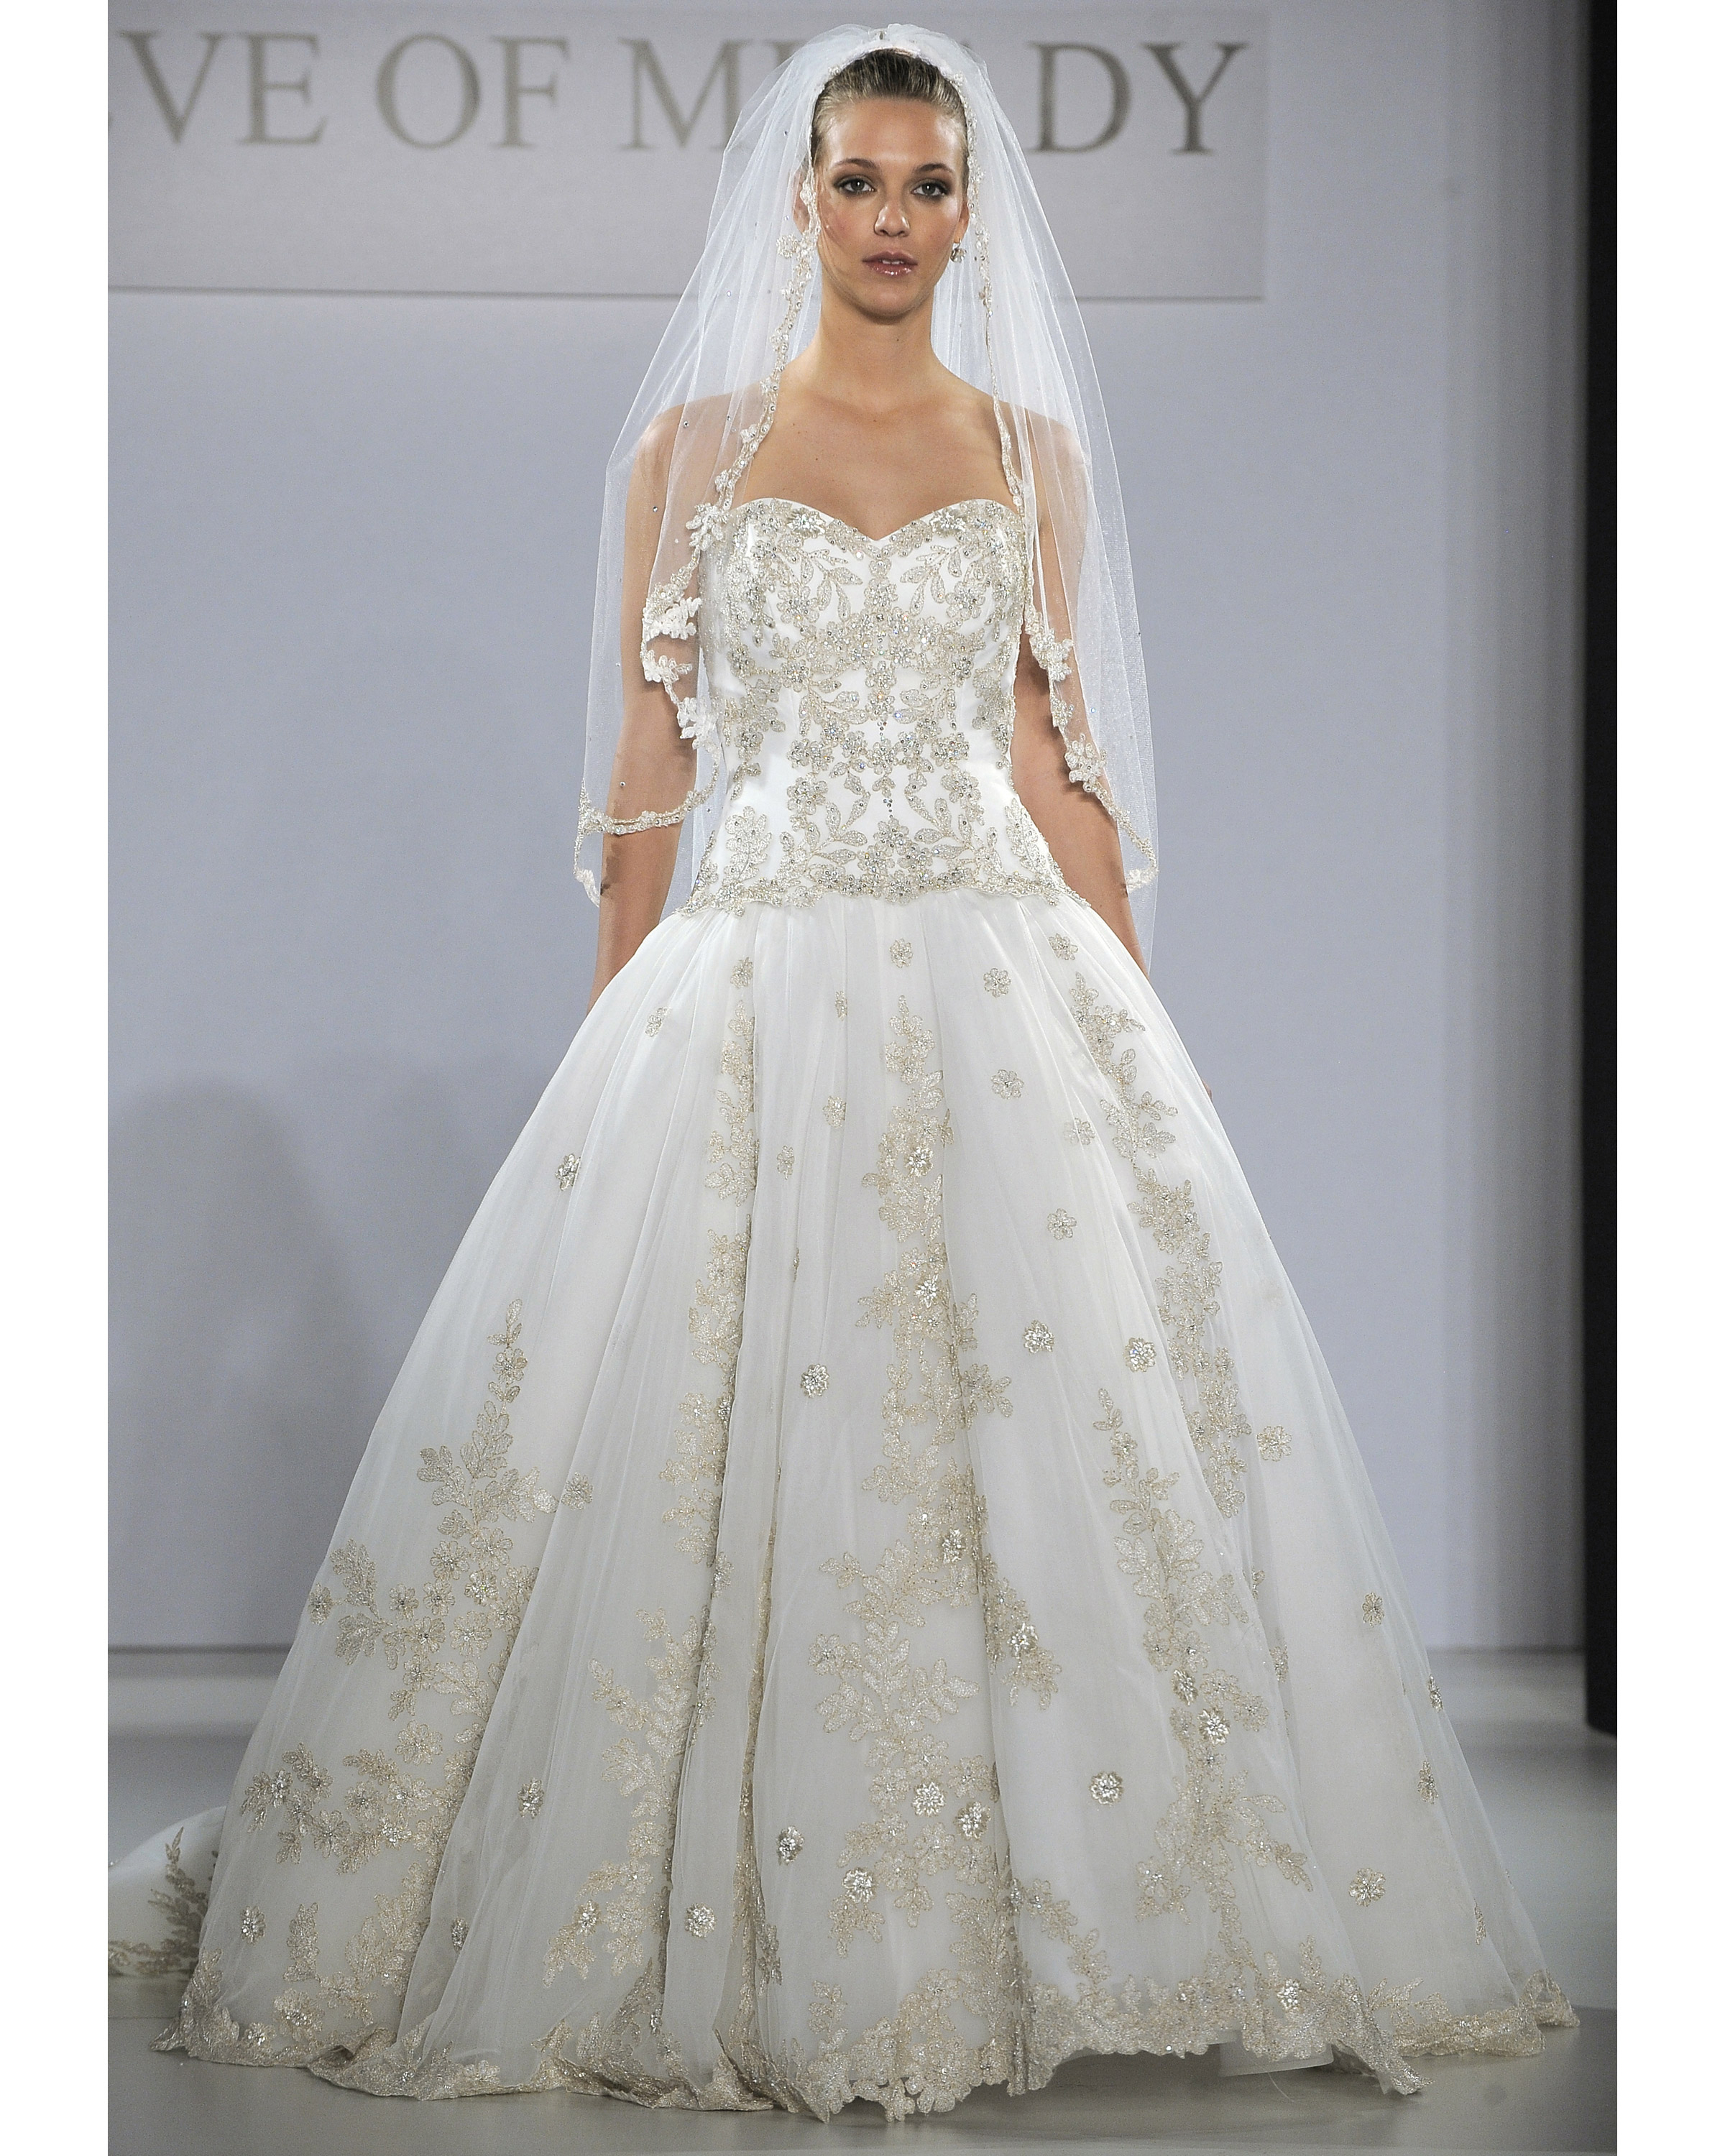 eve-of-milady-fall2013-wd109515-029.jpg